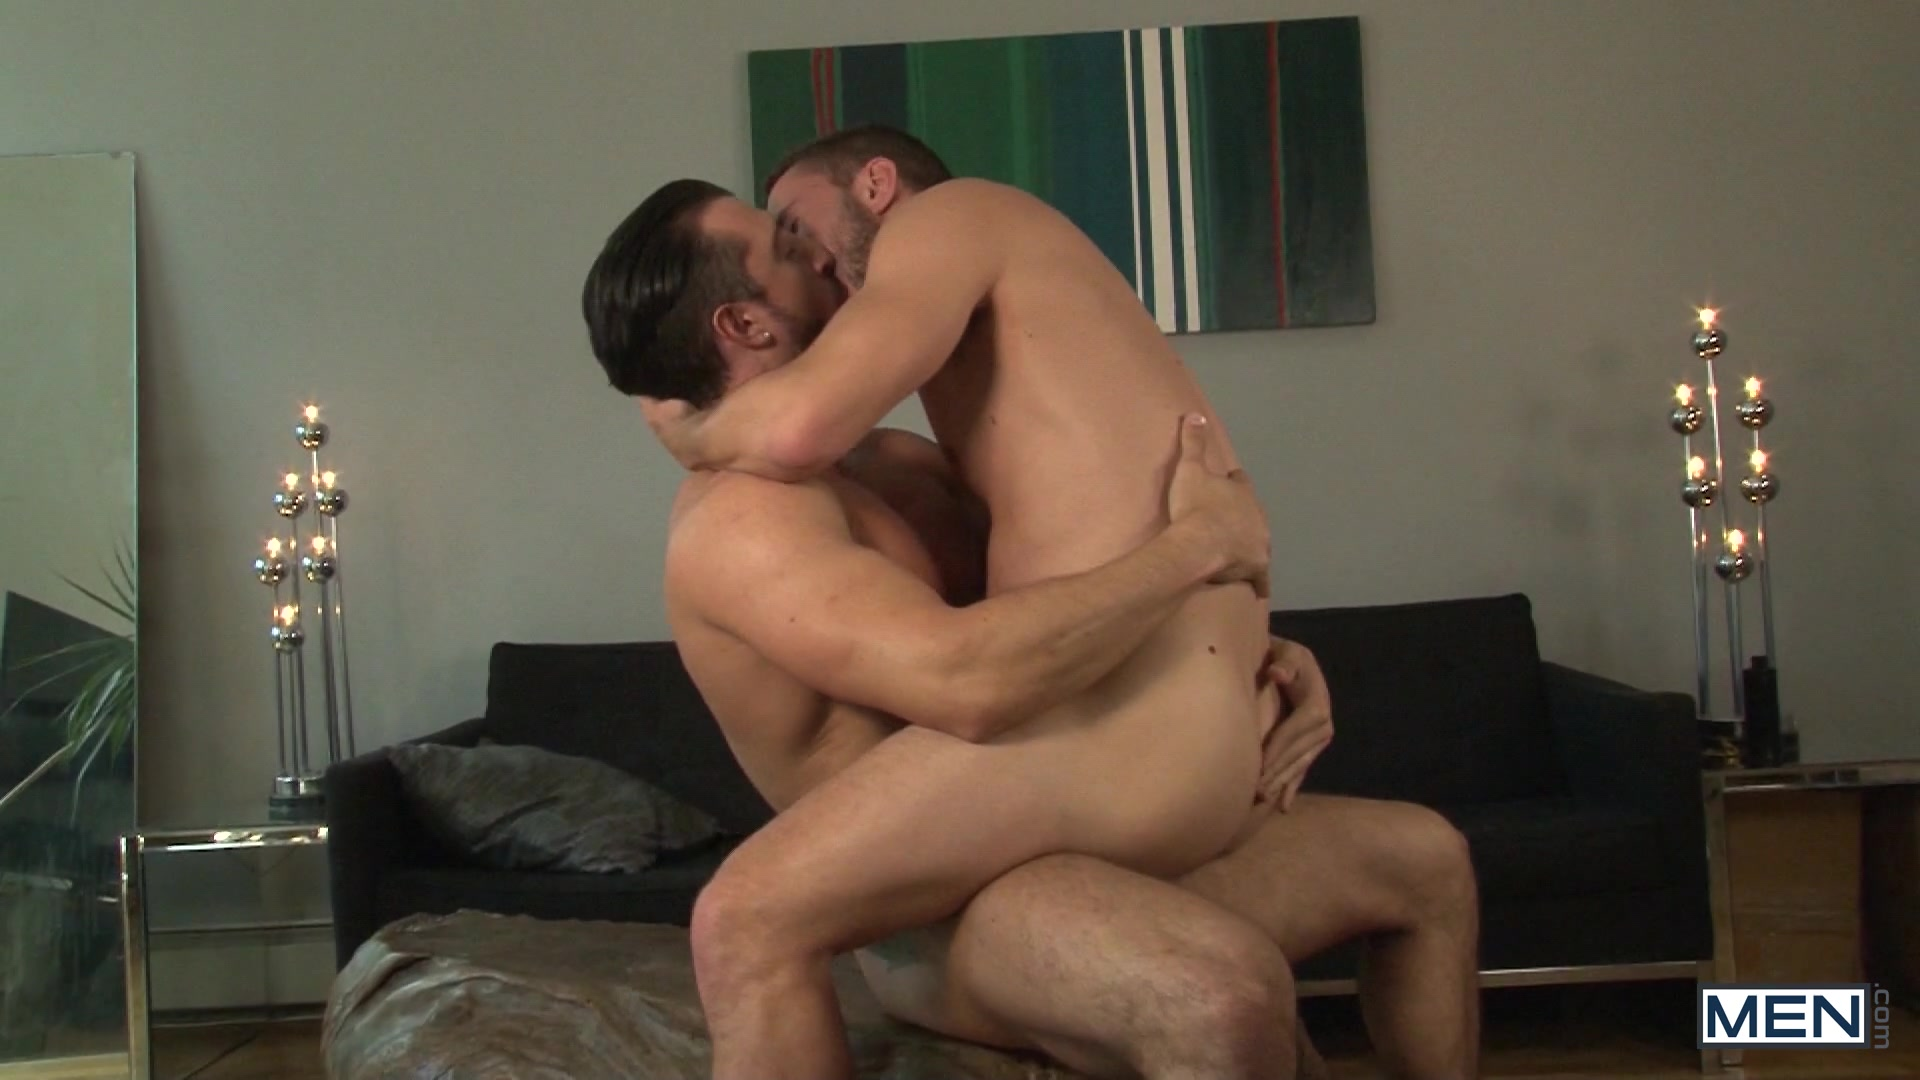 syden sex dogging sex